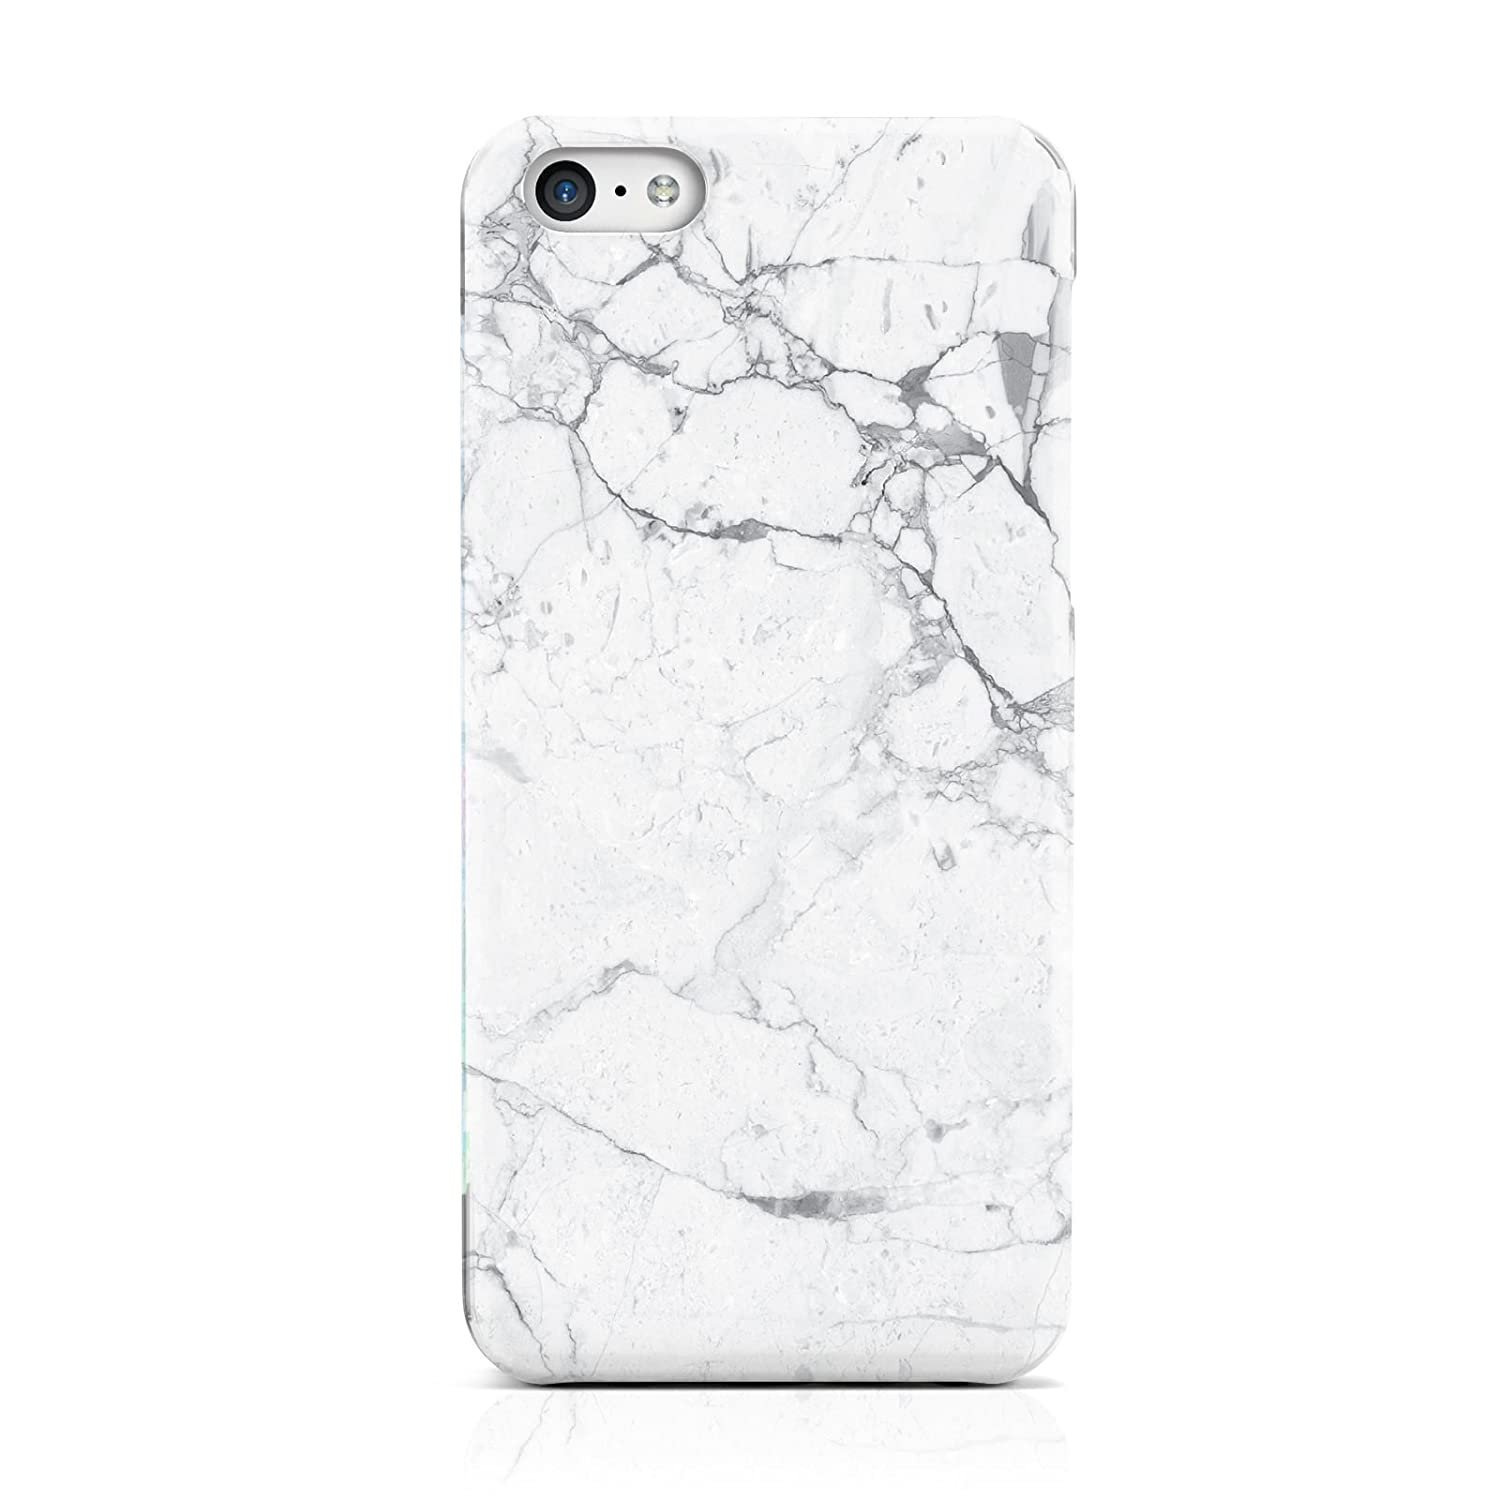 san francisco 48370 28da9 FAUX MARBLE EFFECT GREY WHITE HARD PHONE CASE COVER FOR APPLE IPHONE 5 5S SE